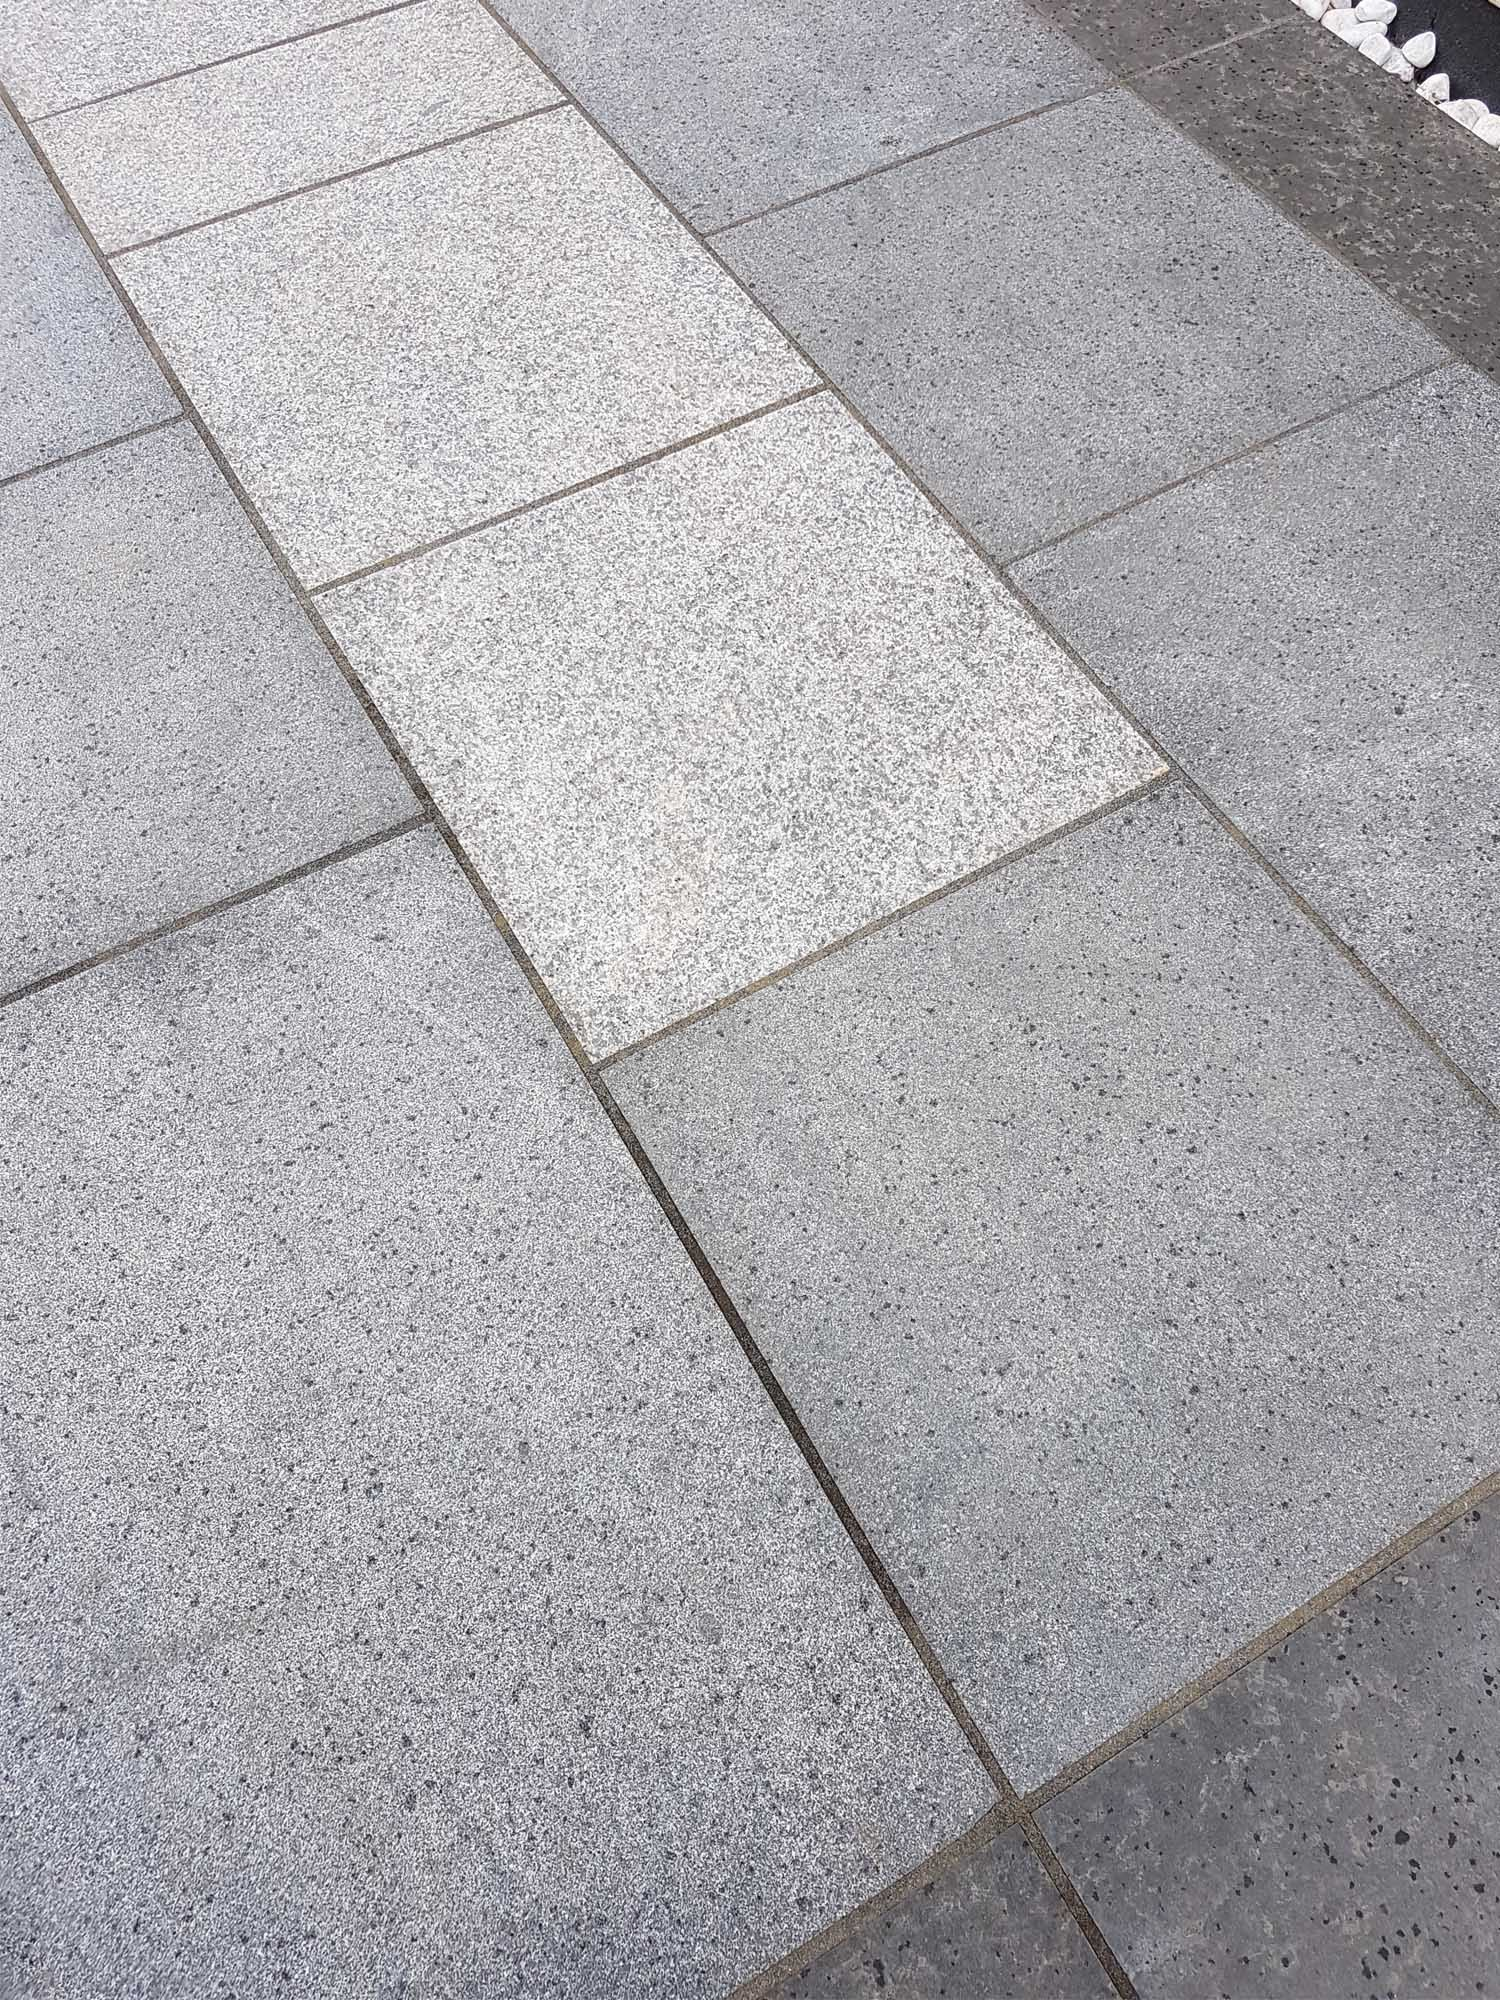 Grey Granite Slabs : Dark grey granite paving mid blue